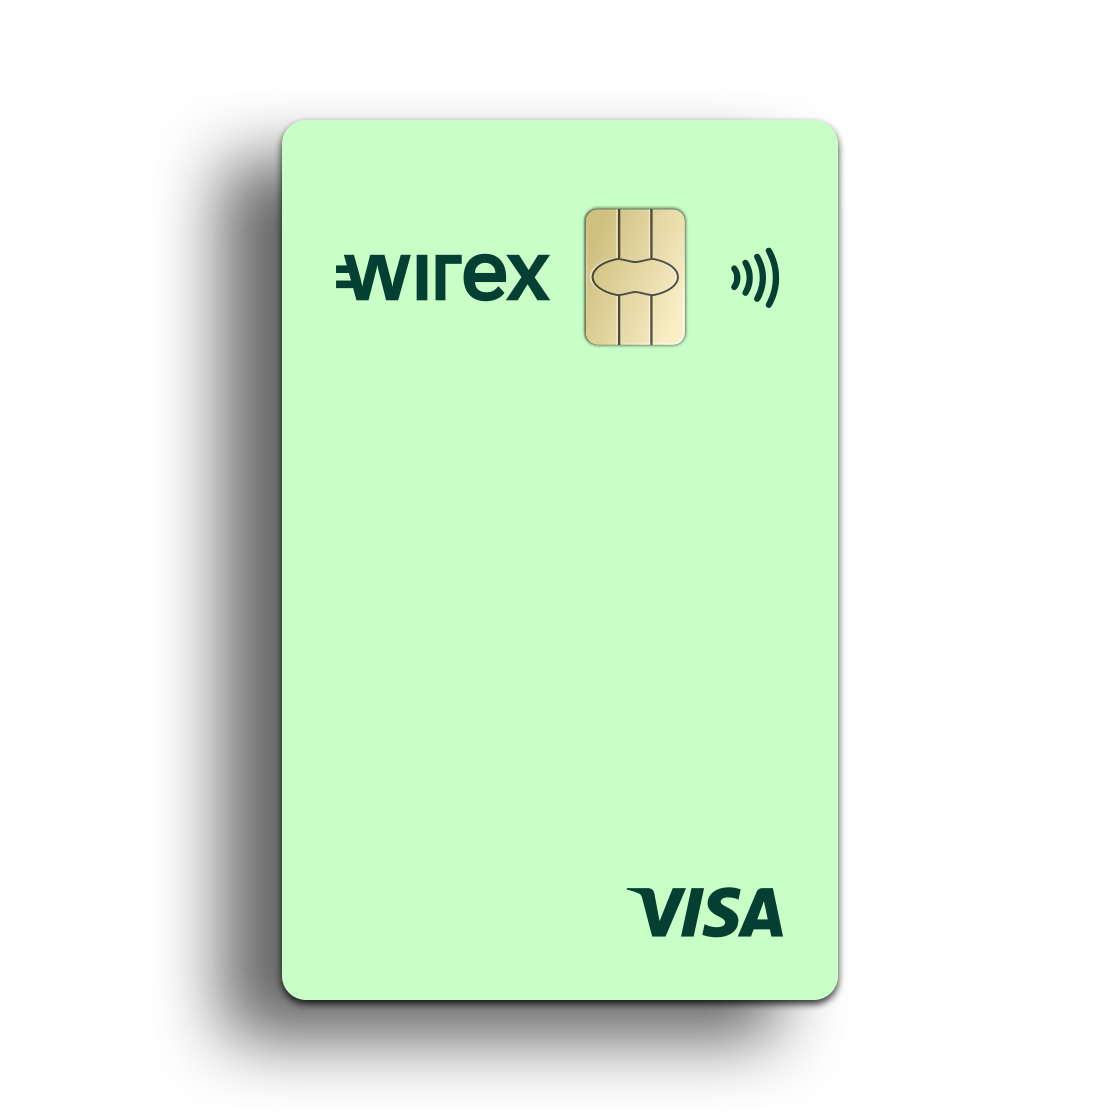 Wirex Card Image